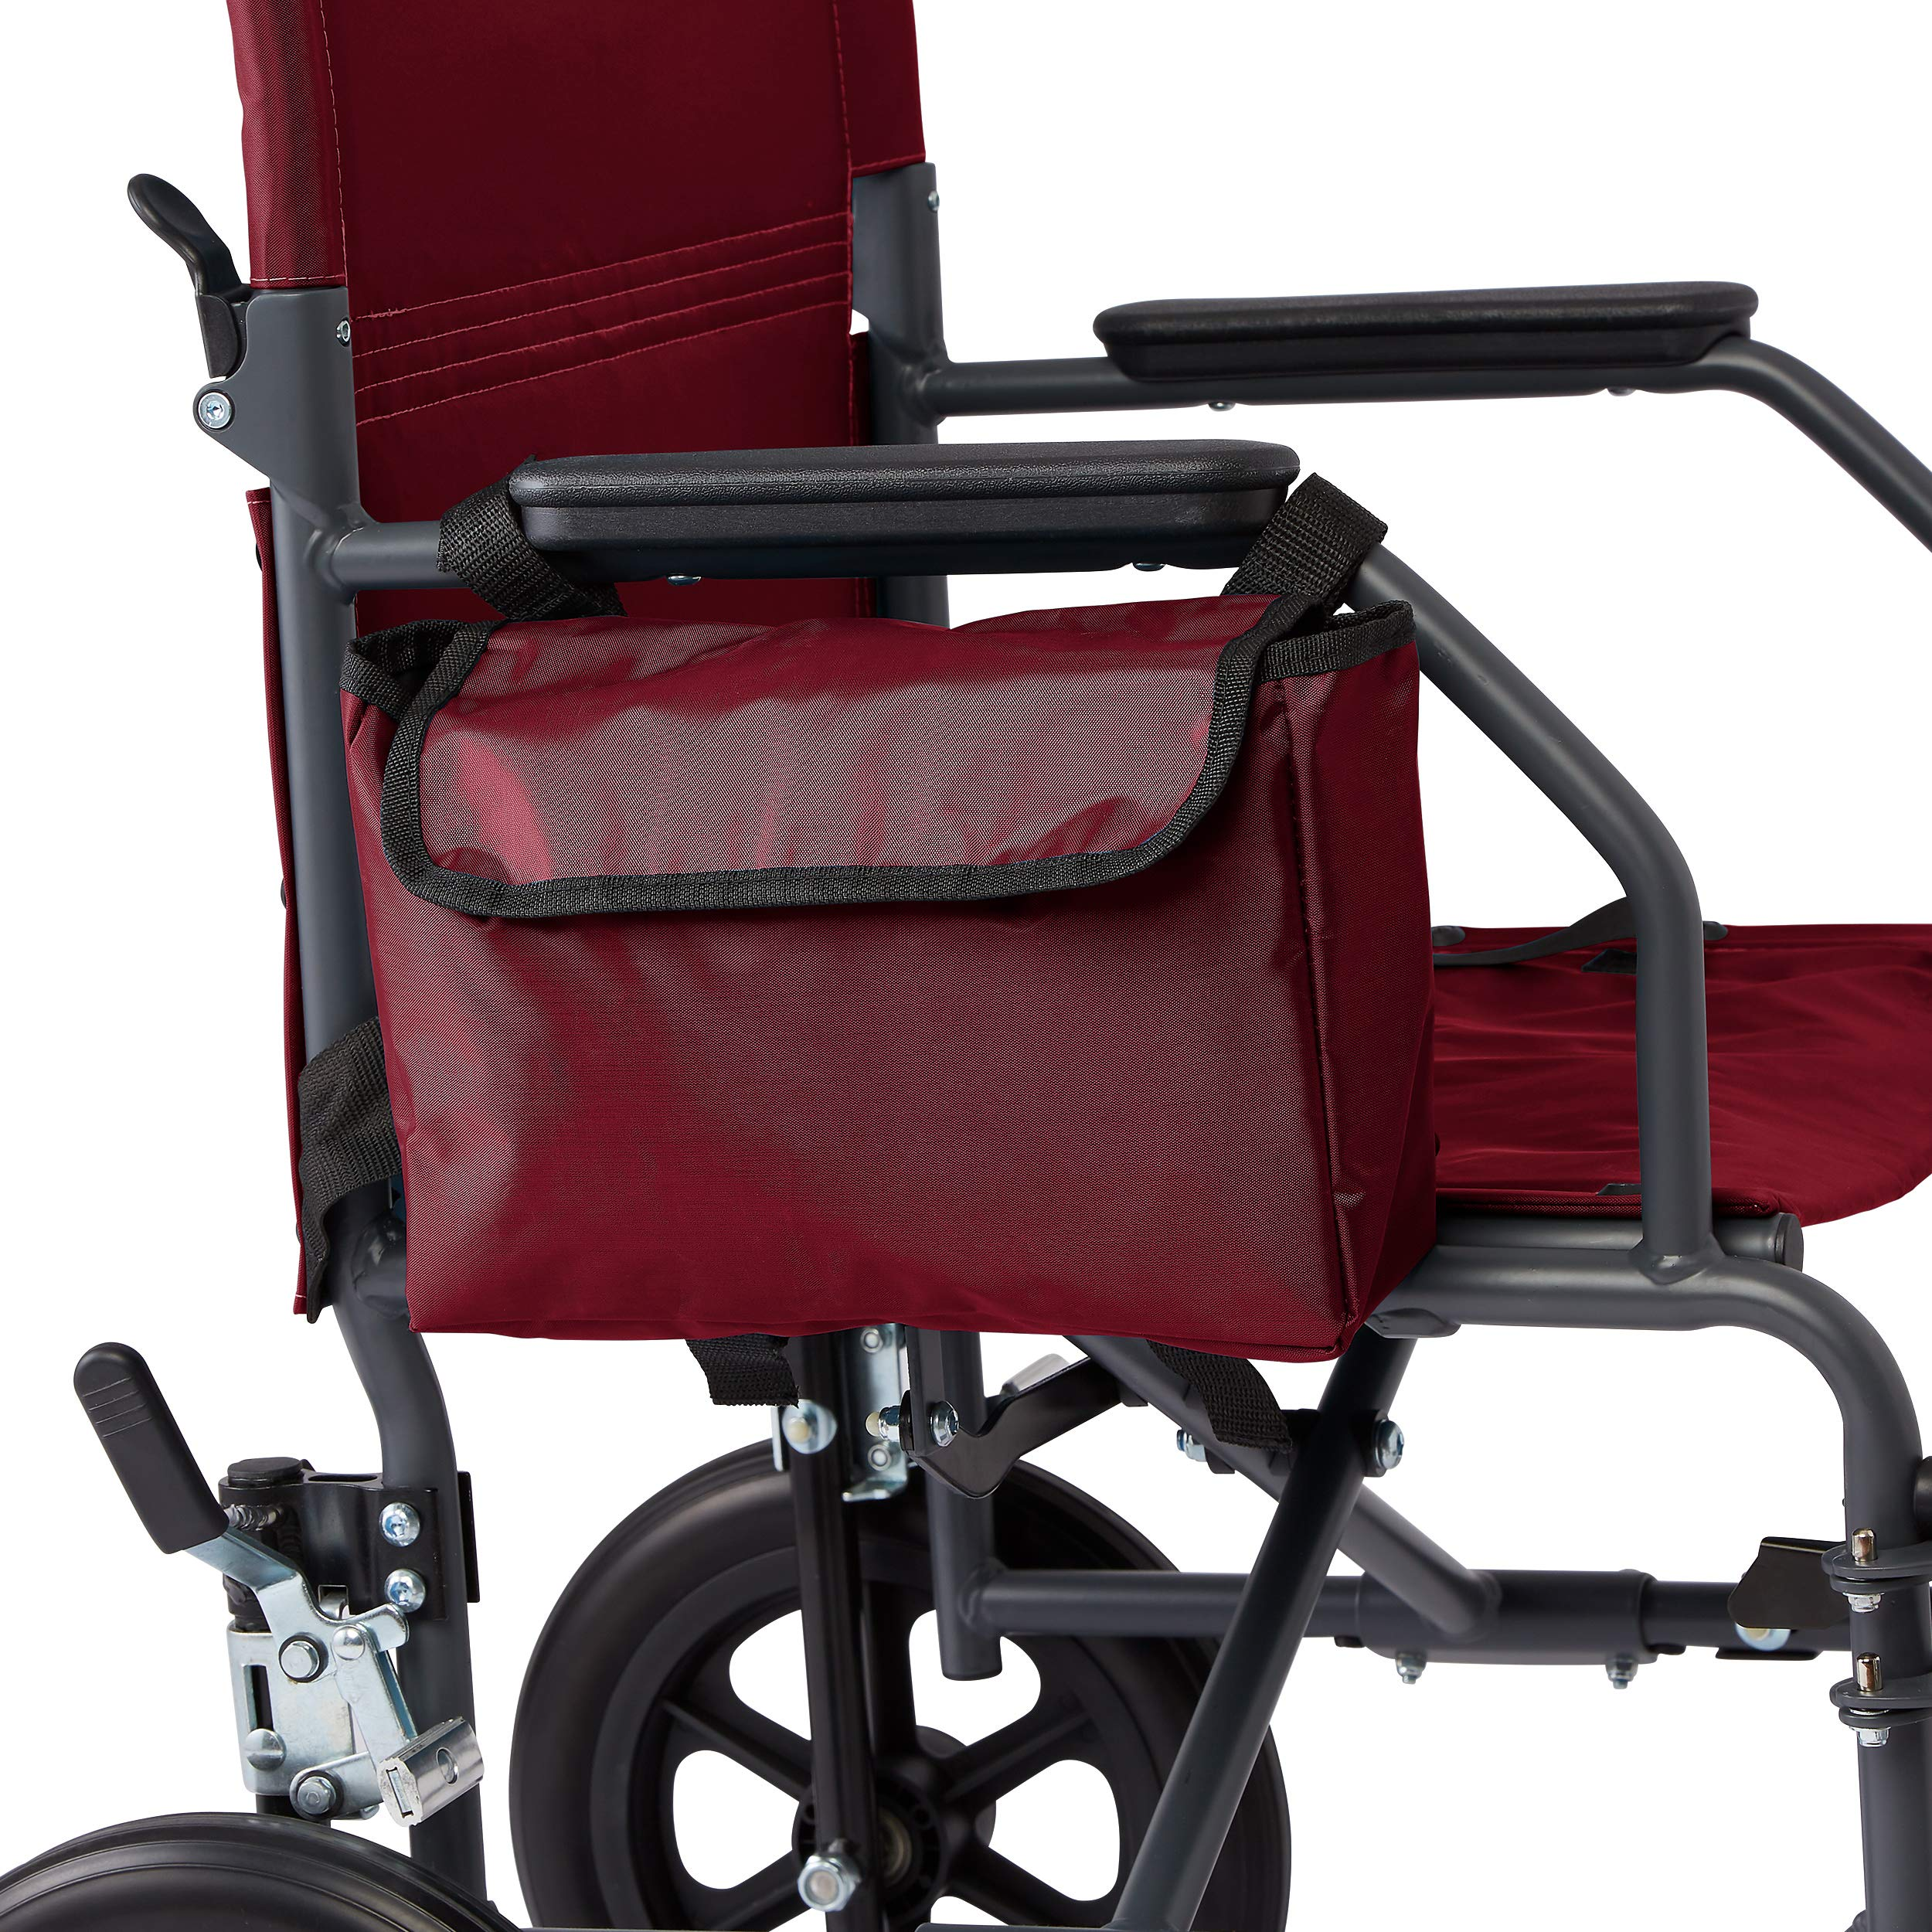 Medline Side Bag for Transport Chair, Waterproof Accessory Bag for Transport Wheelchair is Made of Durable Nylon Material, Red by Medline